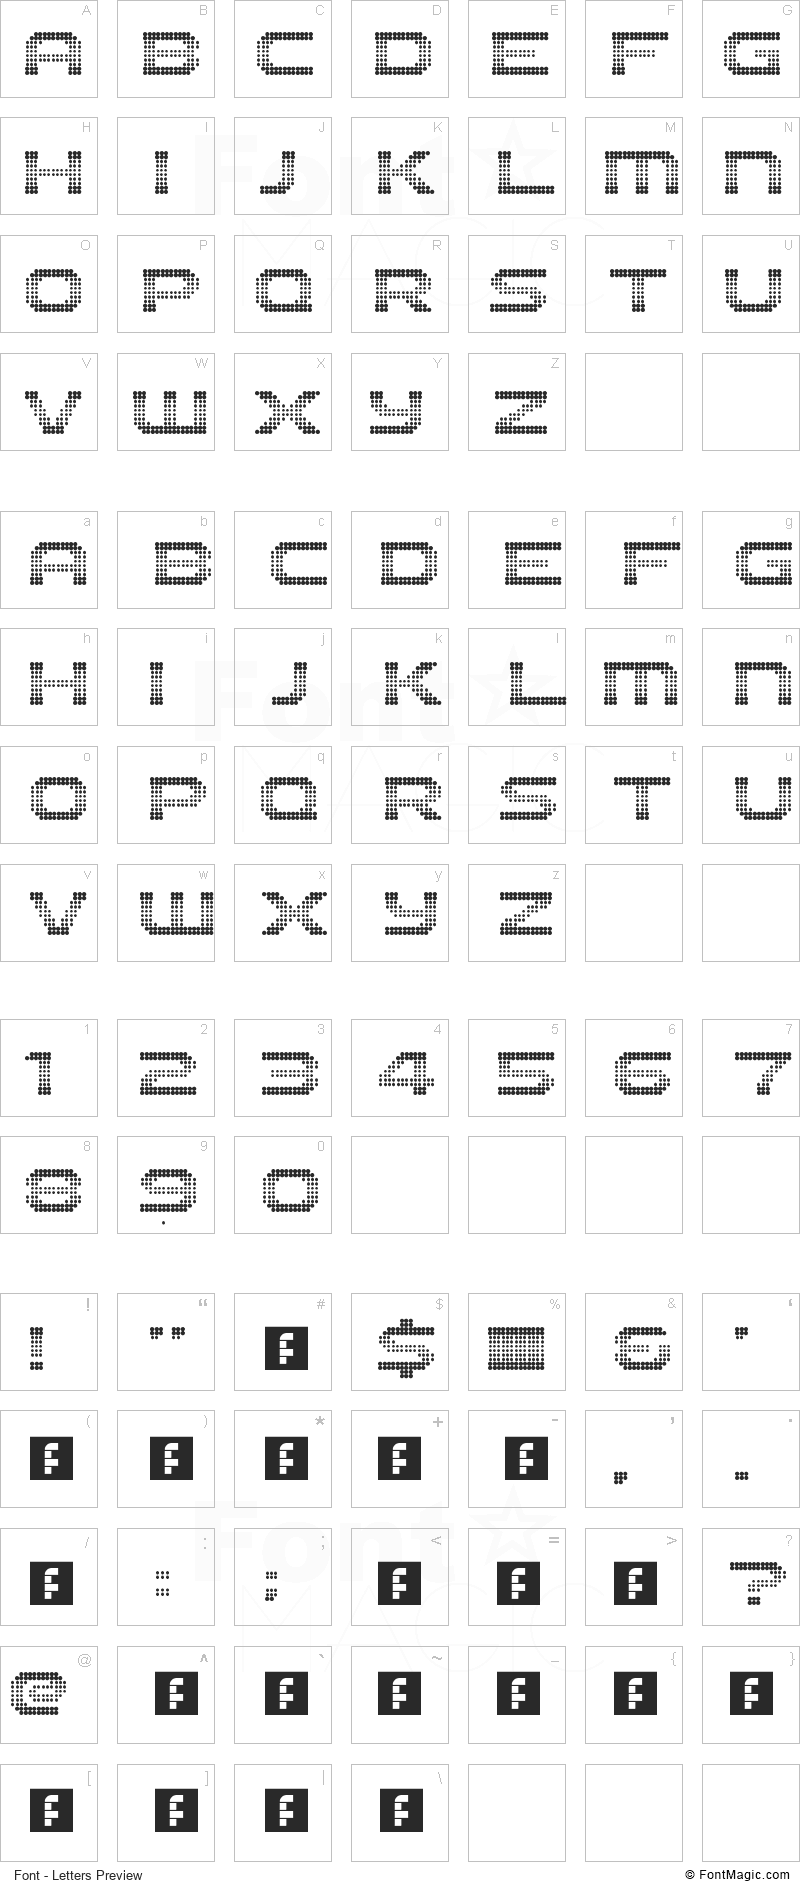 The 2K12 Font - All Latters Preview Chart